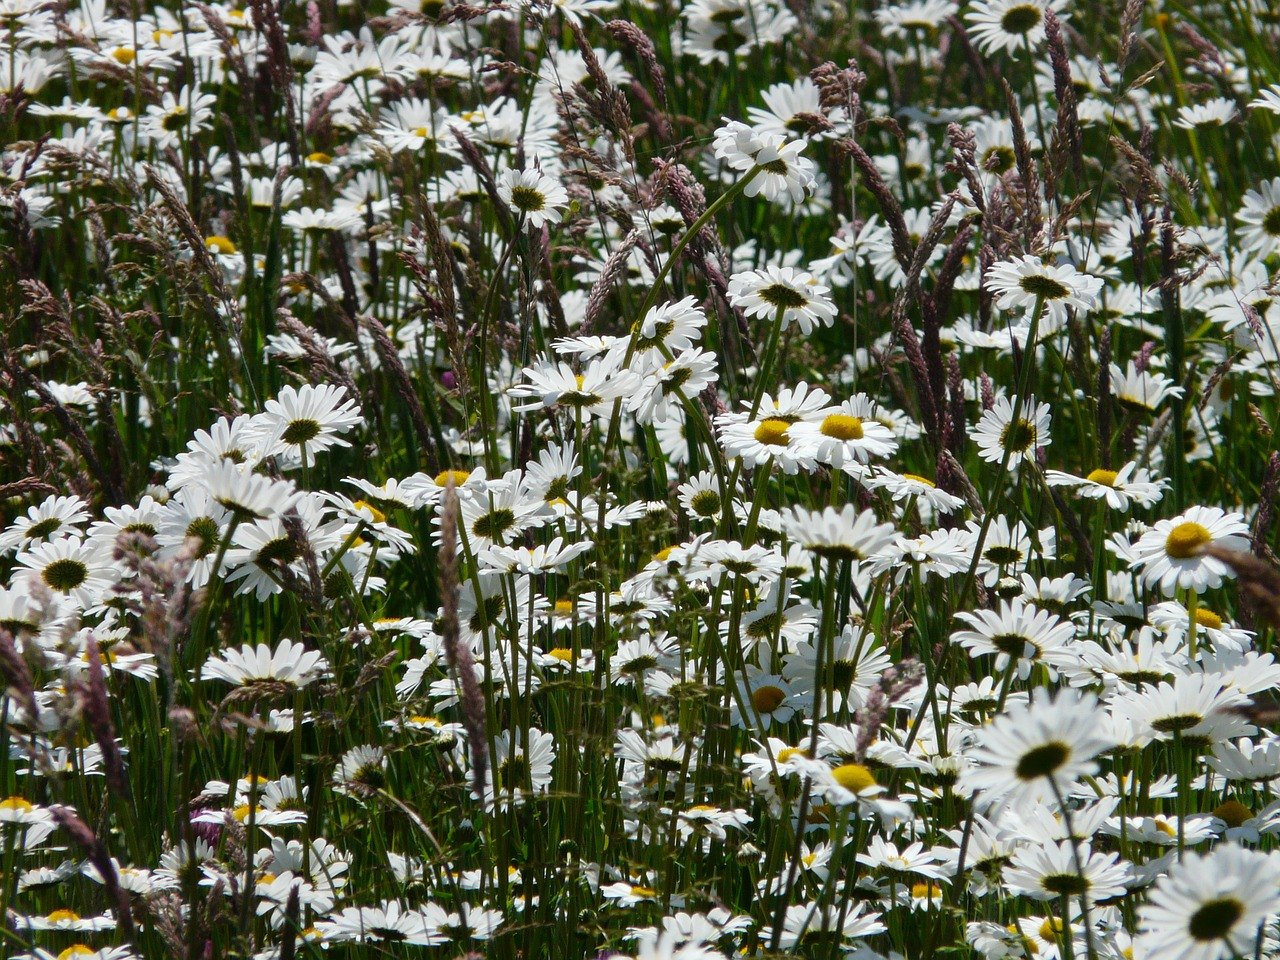 meadows margerite,leucanthemum vulgare,flower,bloom,white,meadow margerite,paid feverfew,daisies,composites,asteraceae,marguerite,leucanthemum,spring,summer,blossom,bloom,meadow,wild flowers,wild flower meadow,blütenmeer,garden plant,container plant,wild flower,schnittblume,free pictures, free photos, free images, royalty free, free illustrations, public domain